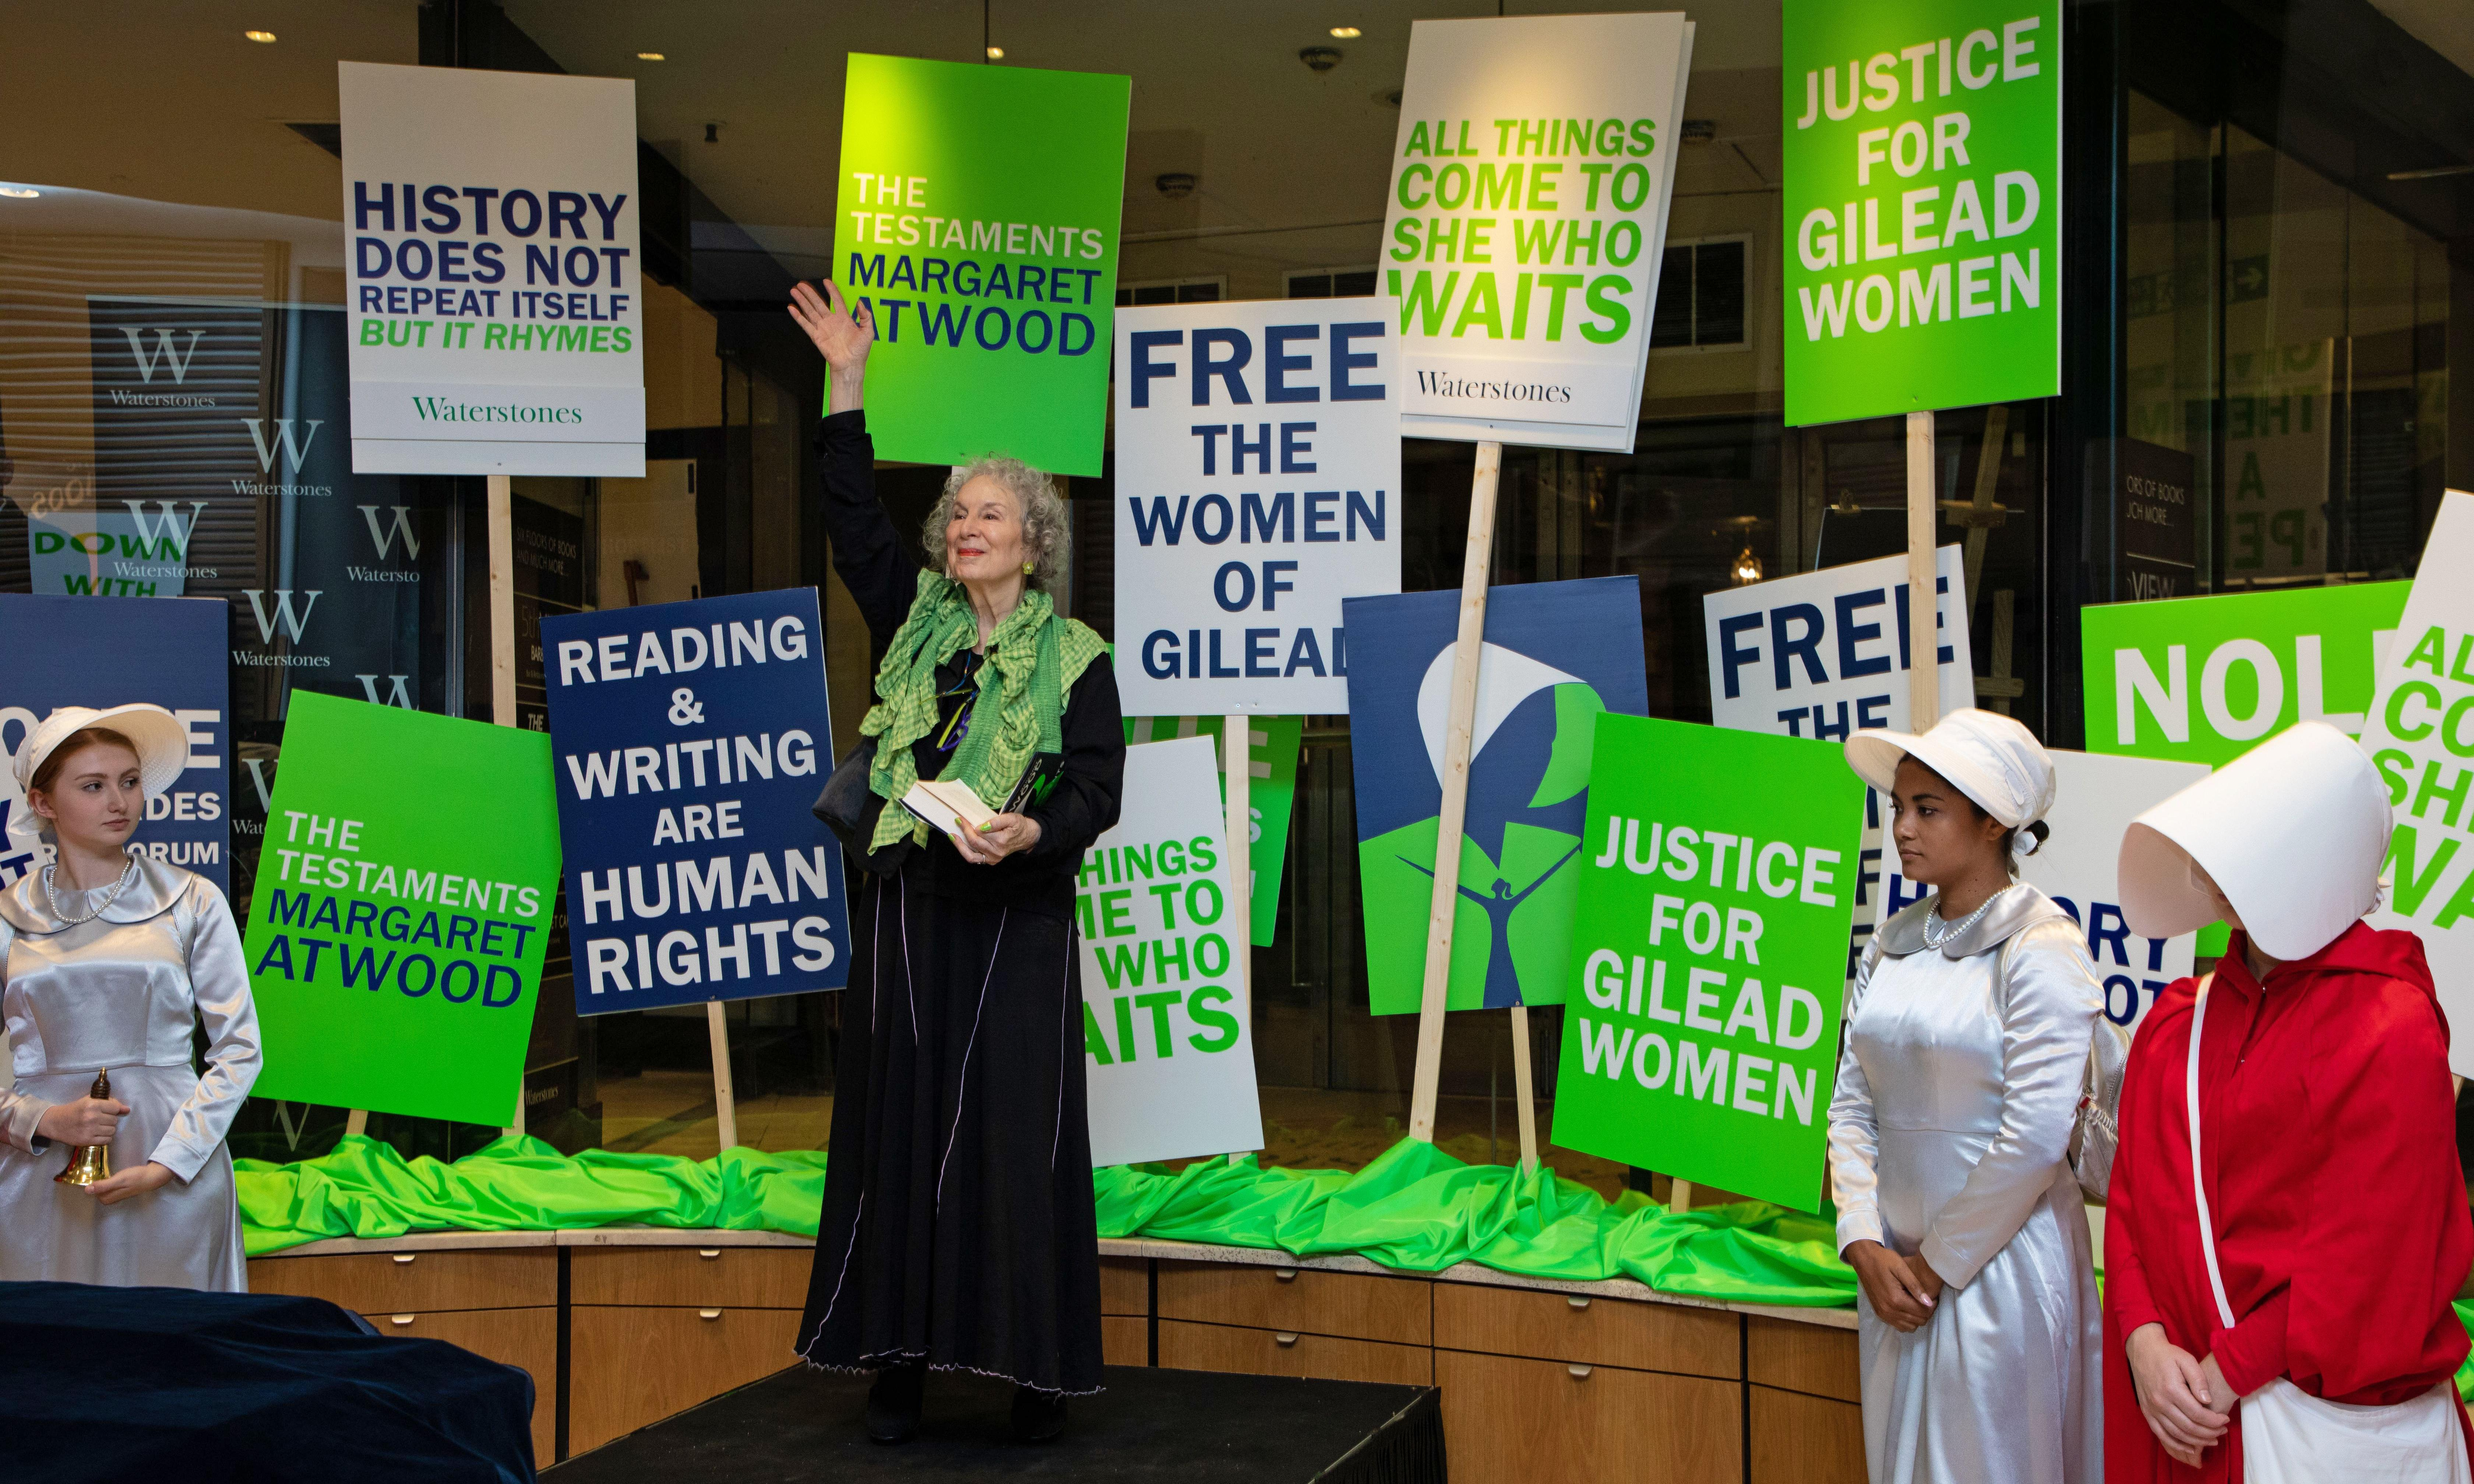 Margaret Atwood's new work is full of feminist hope. But don't dumb it down